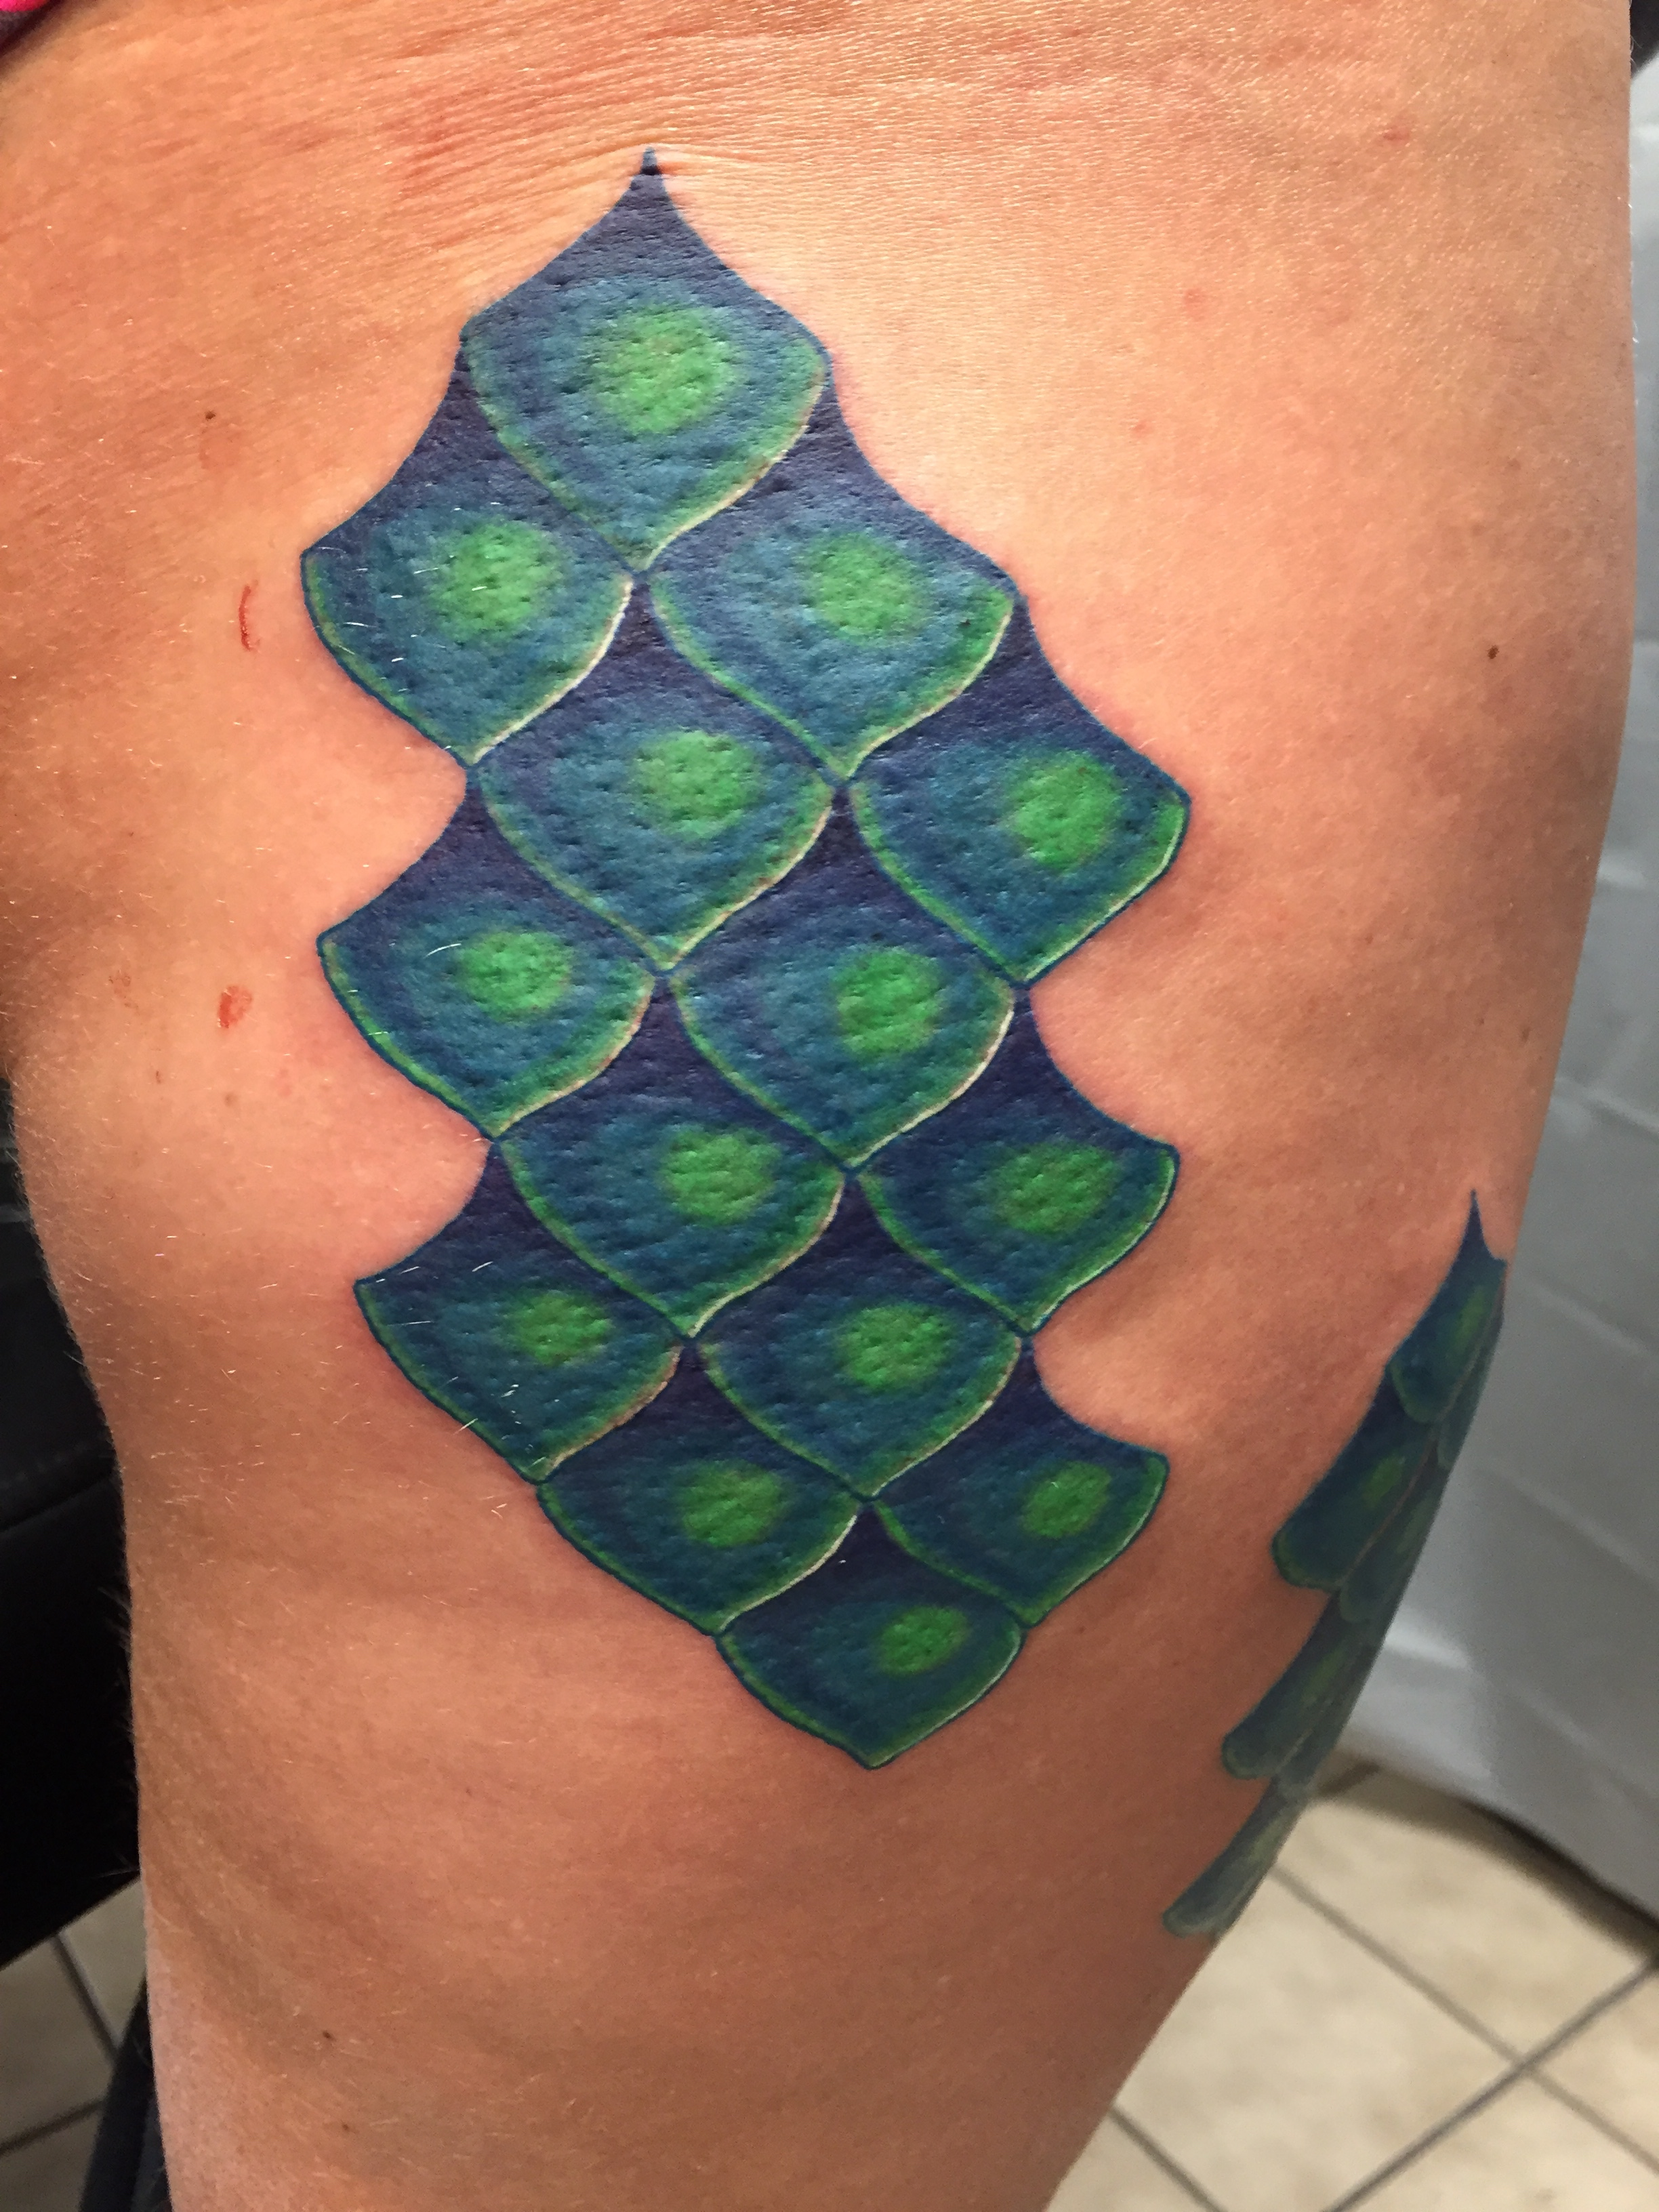 teal and green scale tattoo